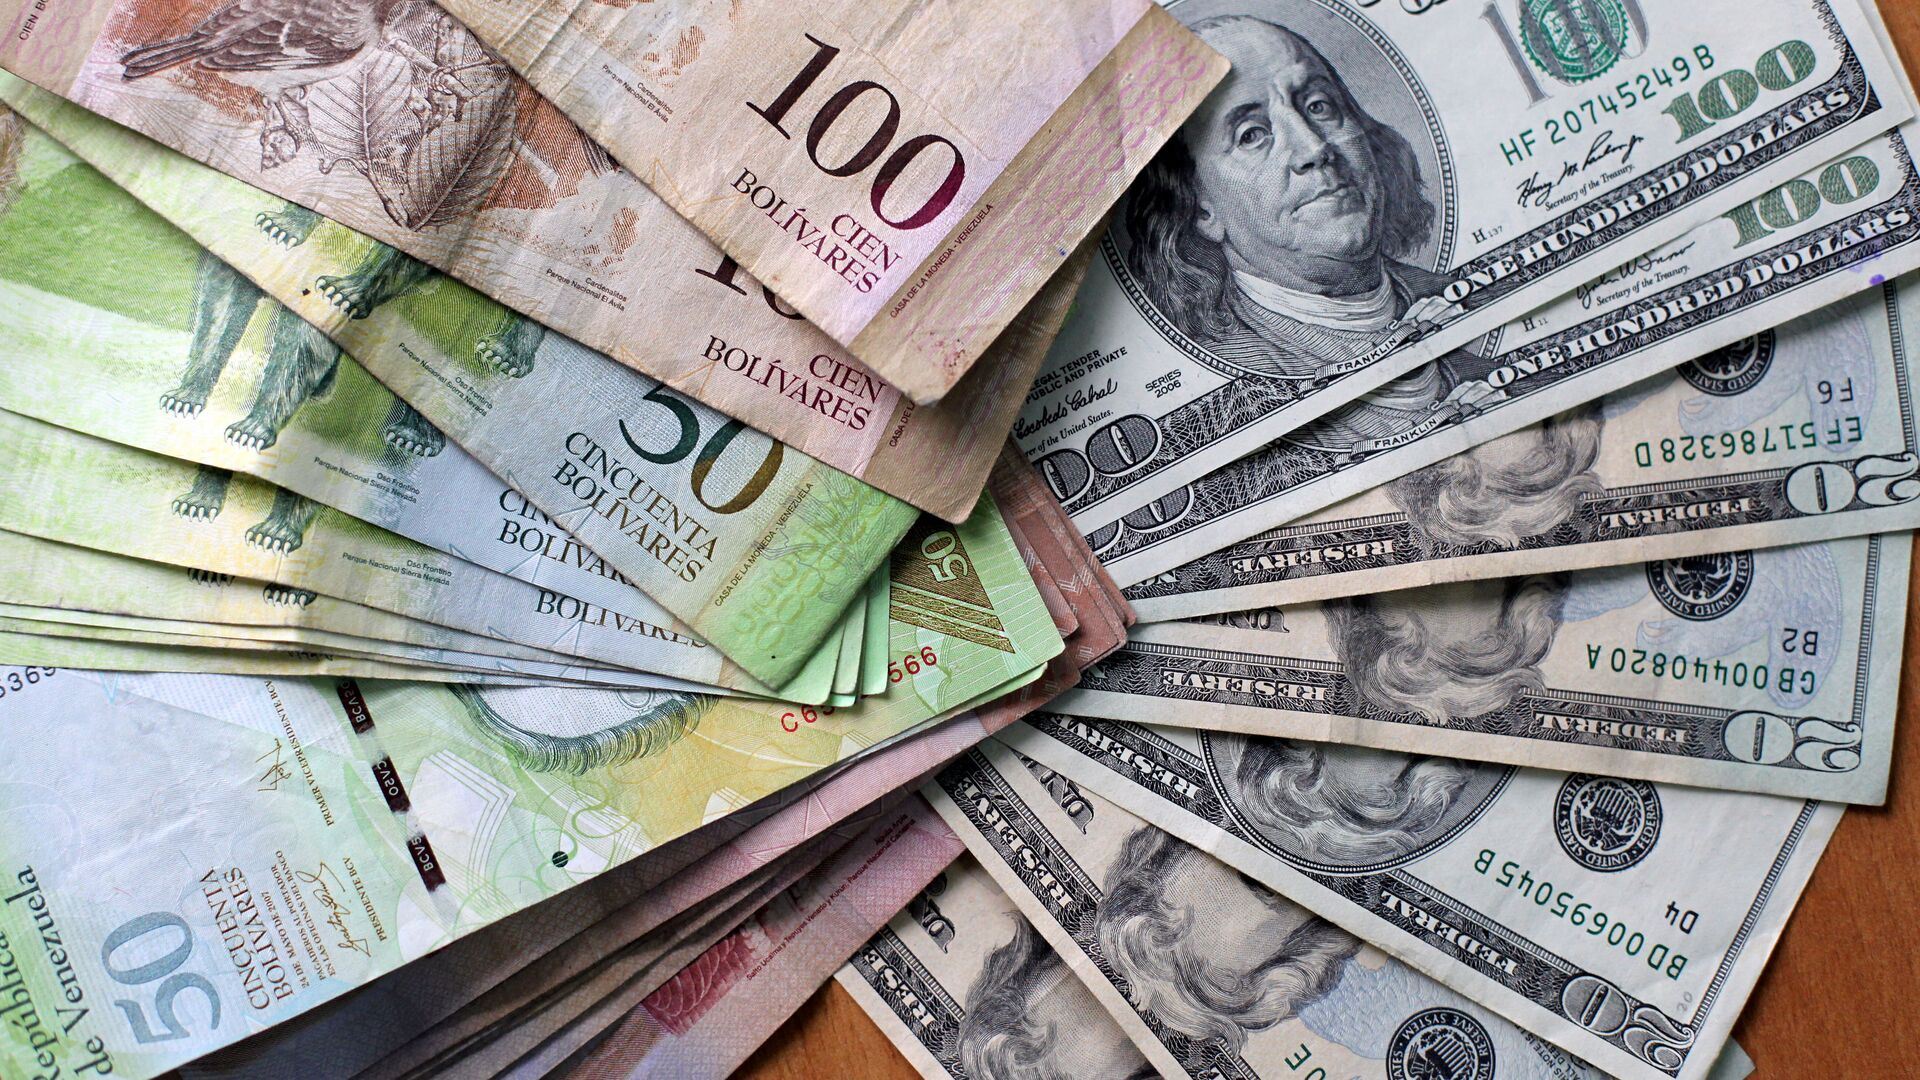 Picture of US dollars and Venezuelan Bolivares fuertes (2,15 per dollar) bills in Caracas on August 17, 2009. Venezuelan President Hugo Chavez's government will soon announce new measures to restore the currency balance which --according to Chavez-- is suffering from a distortion due to an unofficial, though legal, exchange market - Sputnik Mundo, 1920, 16.03.2021